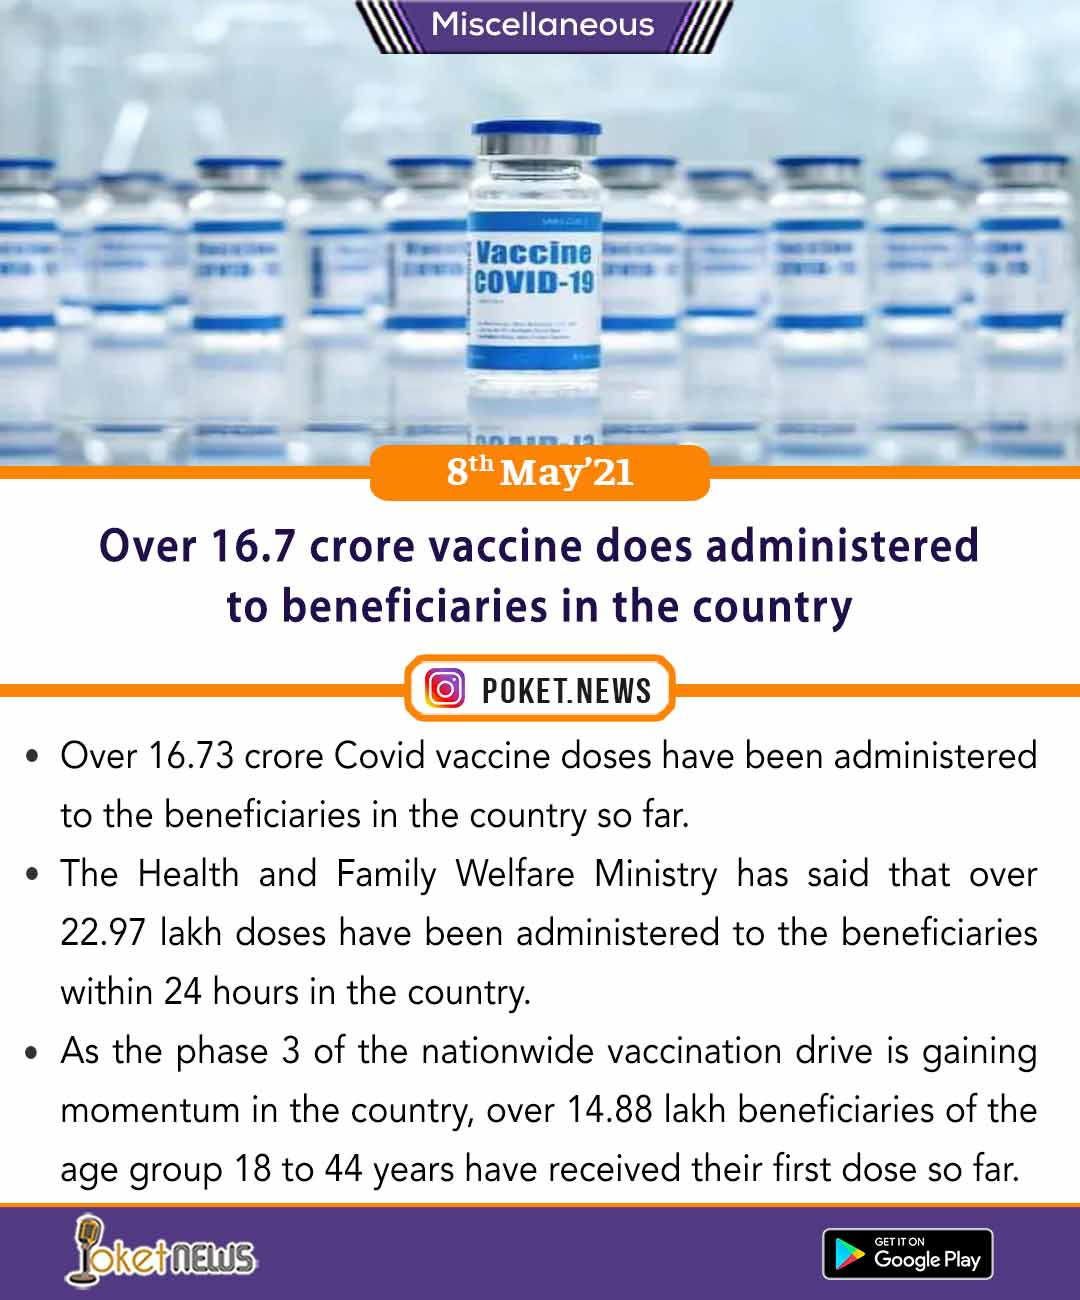 Over 16.7 crore vaccine does administered to beneficiaries in the country